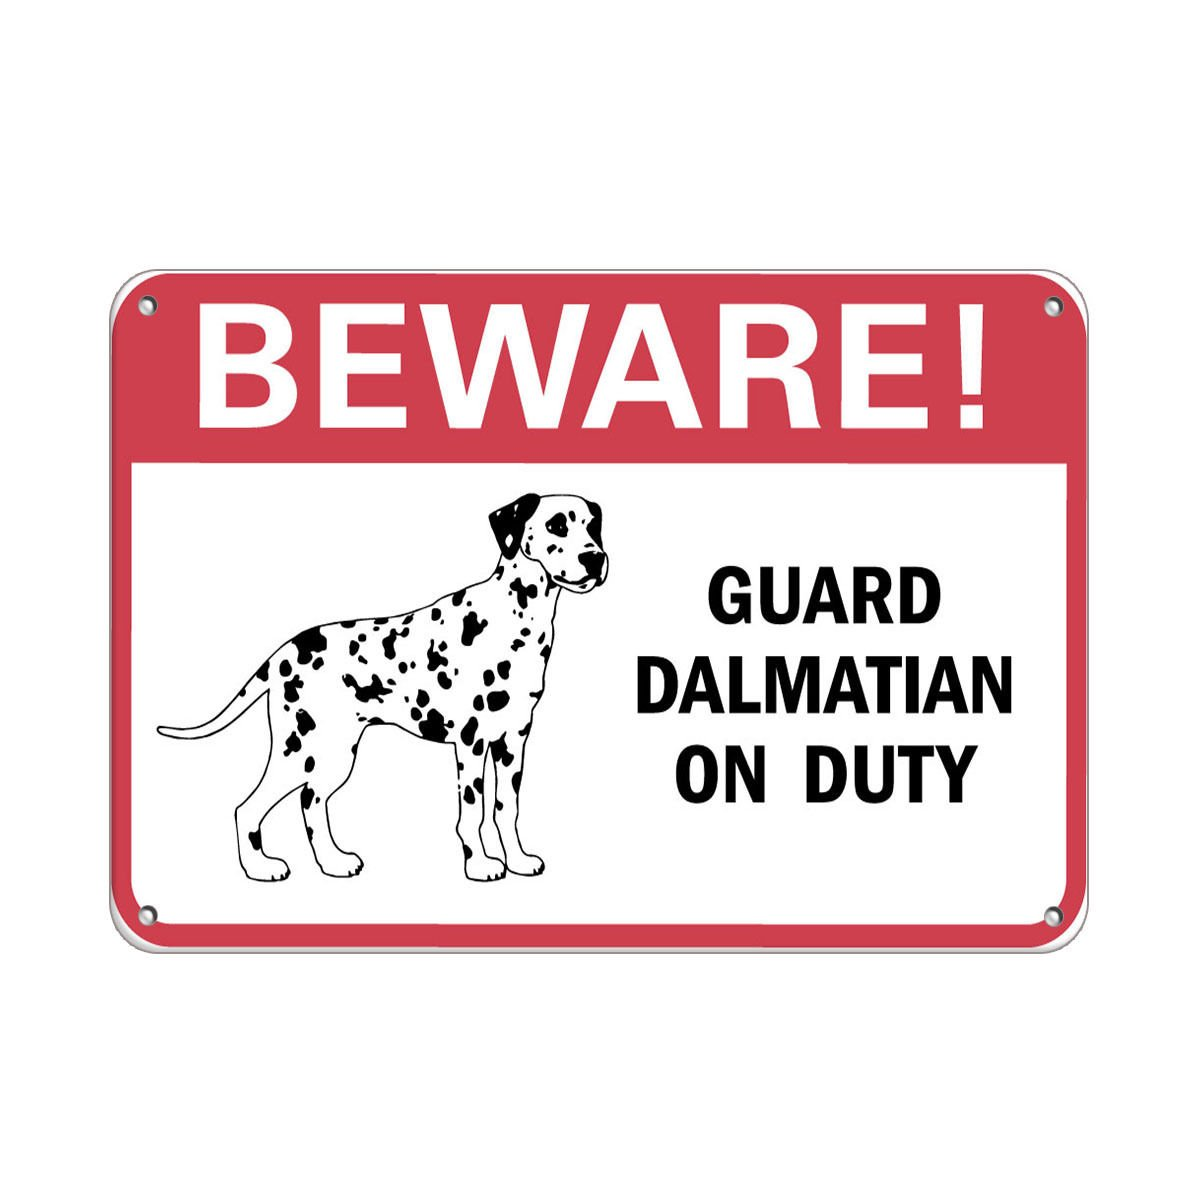 Beware! Guard Dalmatian On Duty Pet Animal Sign LABEL DECAL STICKER Sticks to Any Surface 10x7 by Cortan360